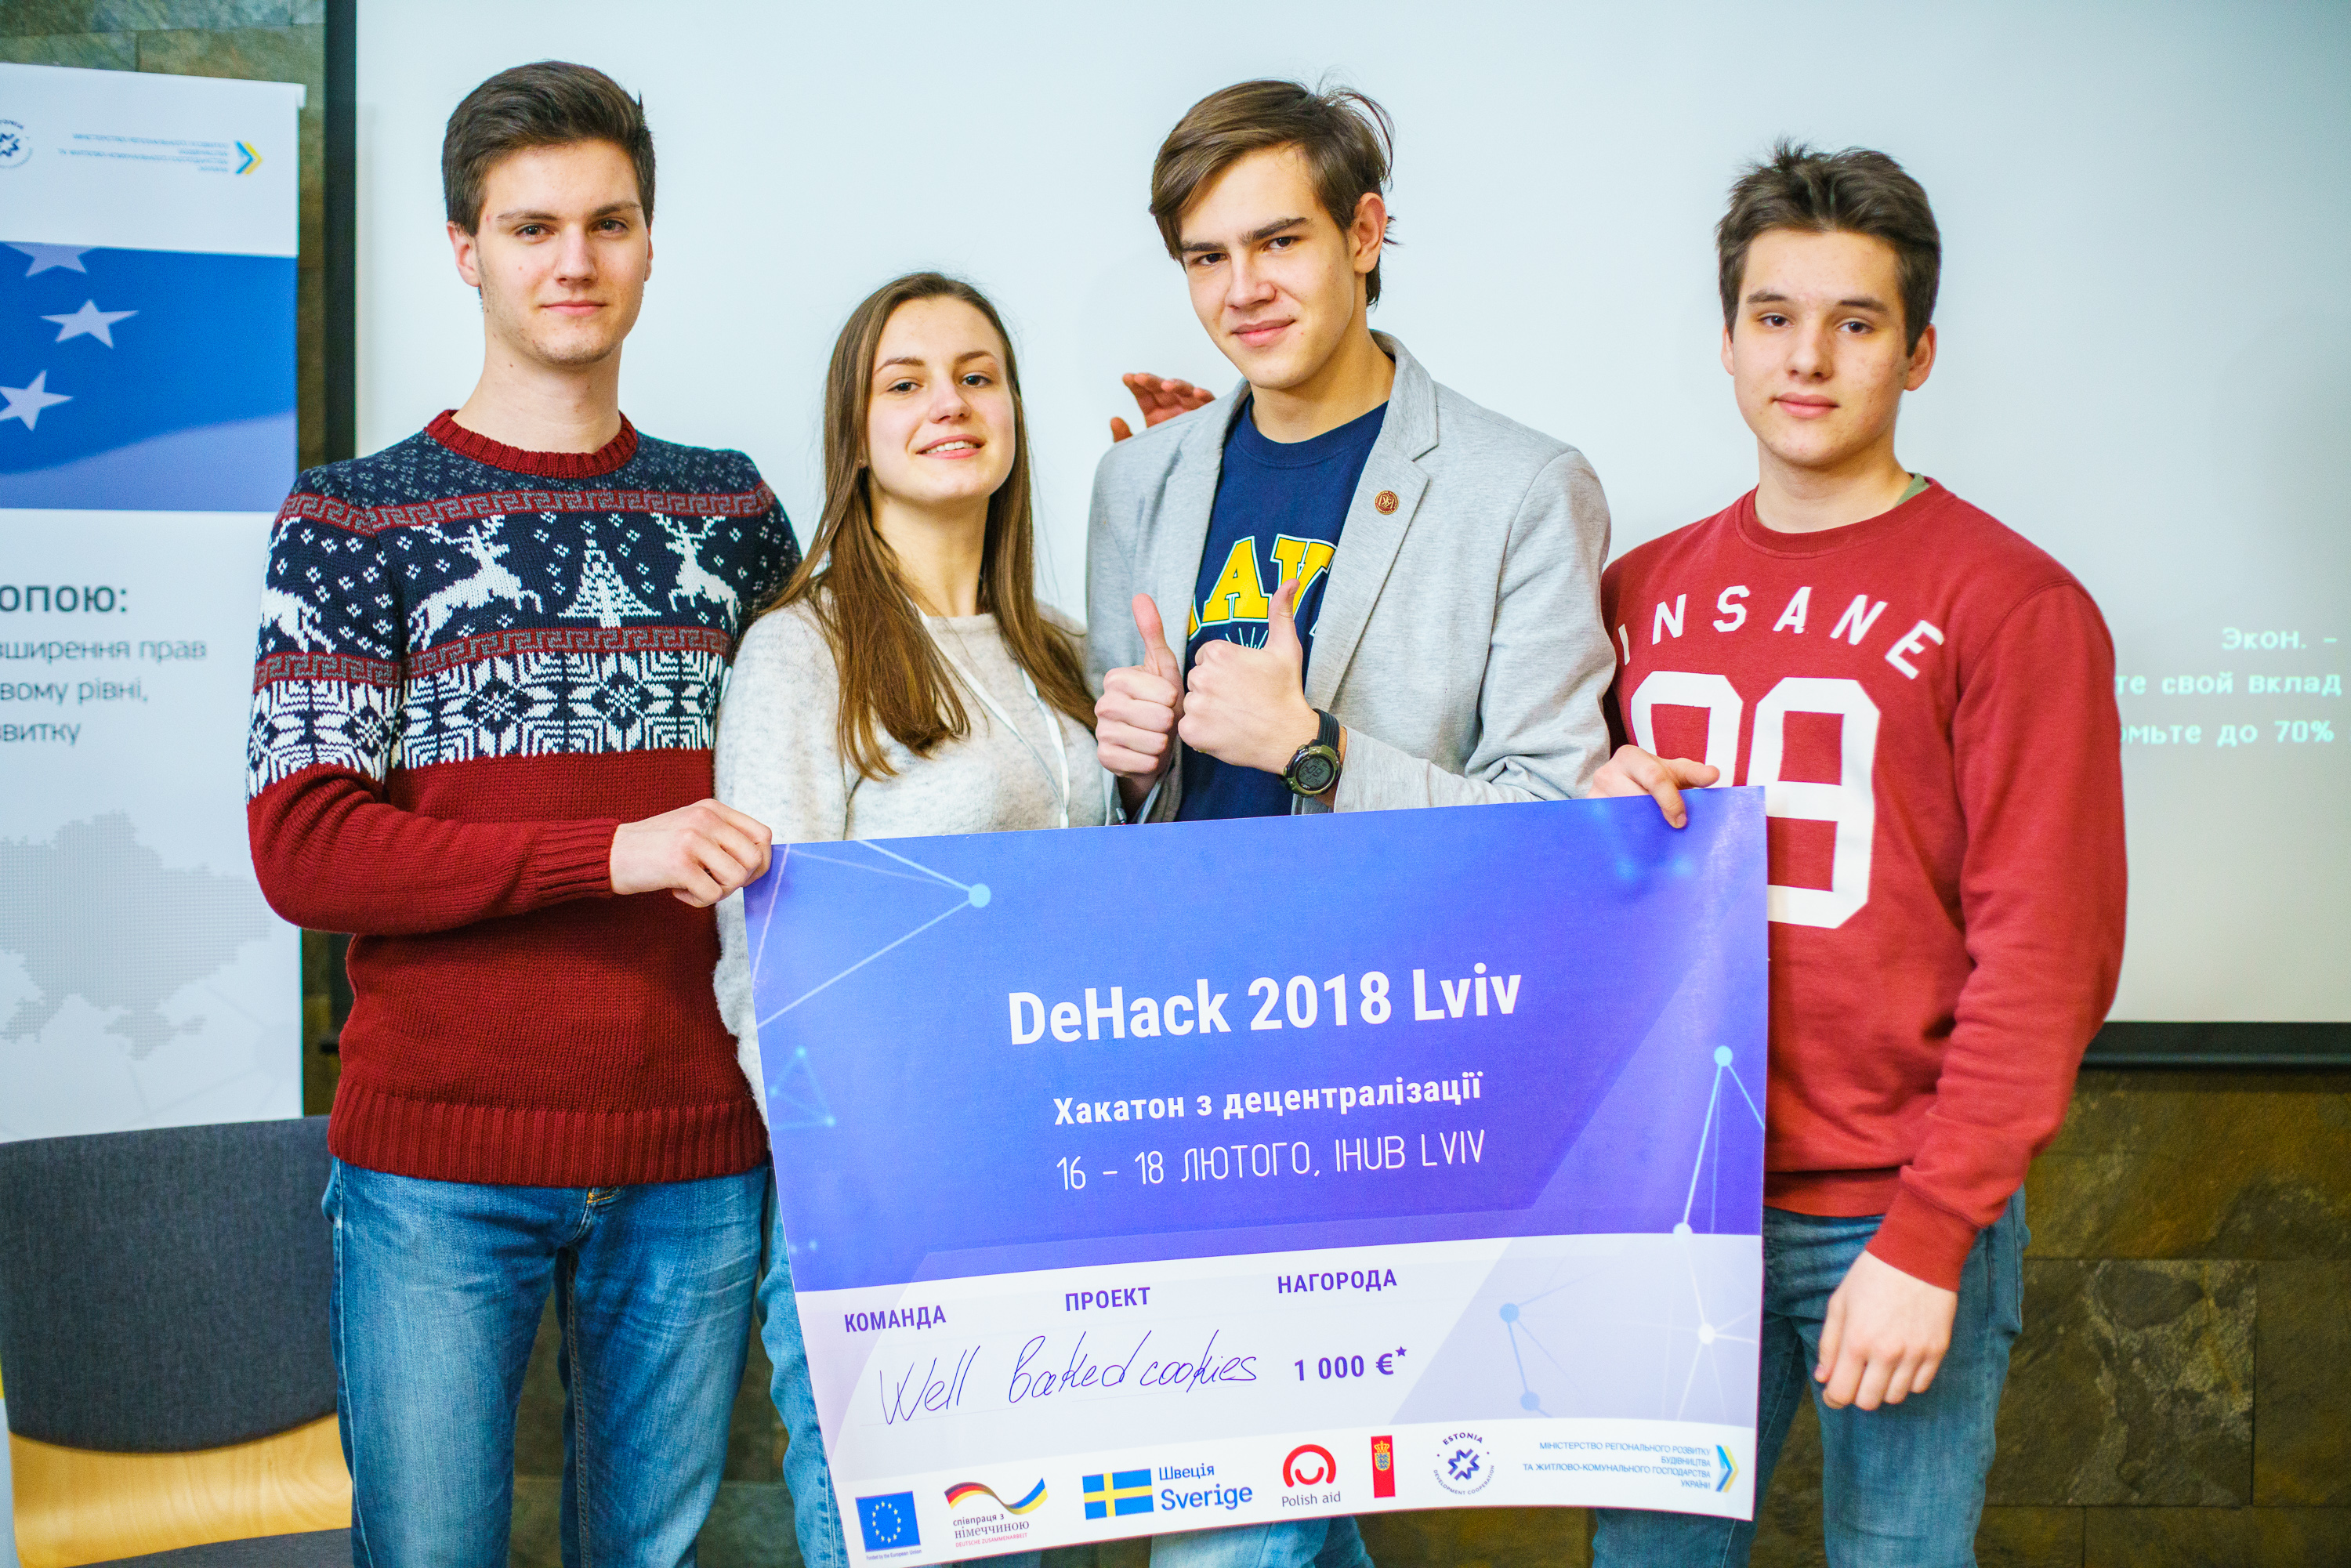 First decentralisation hackathon was held in Lviv